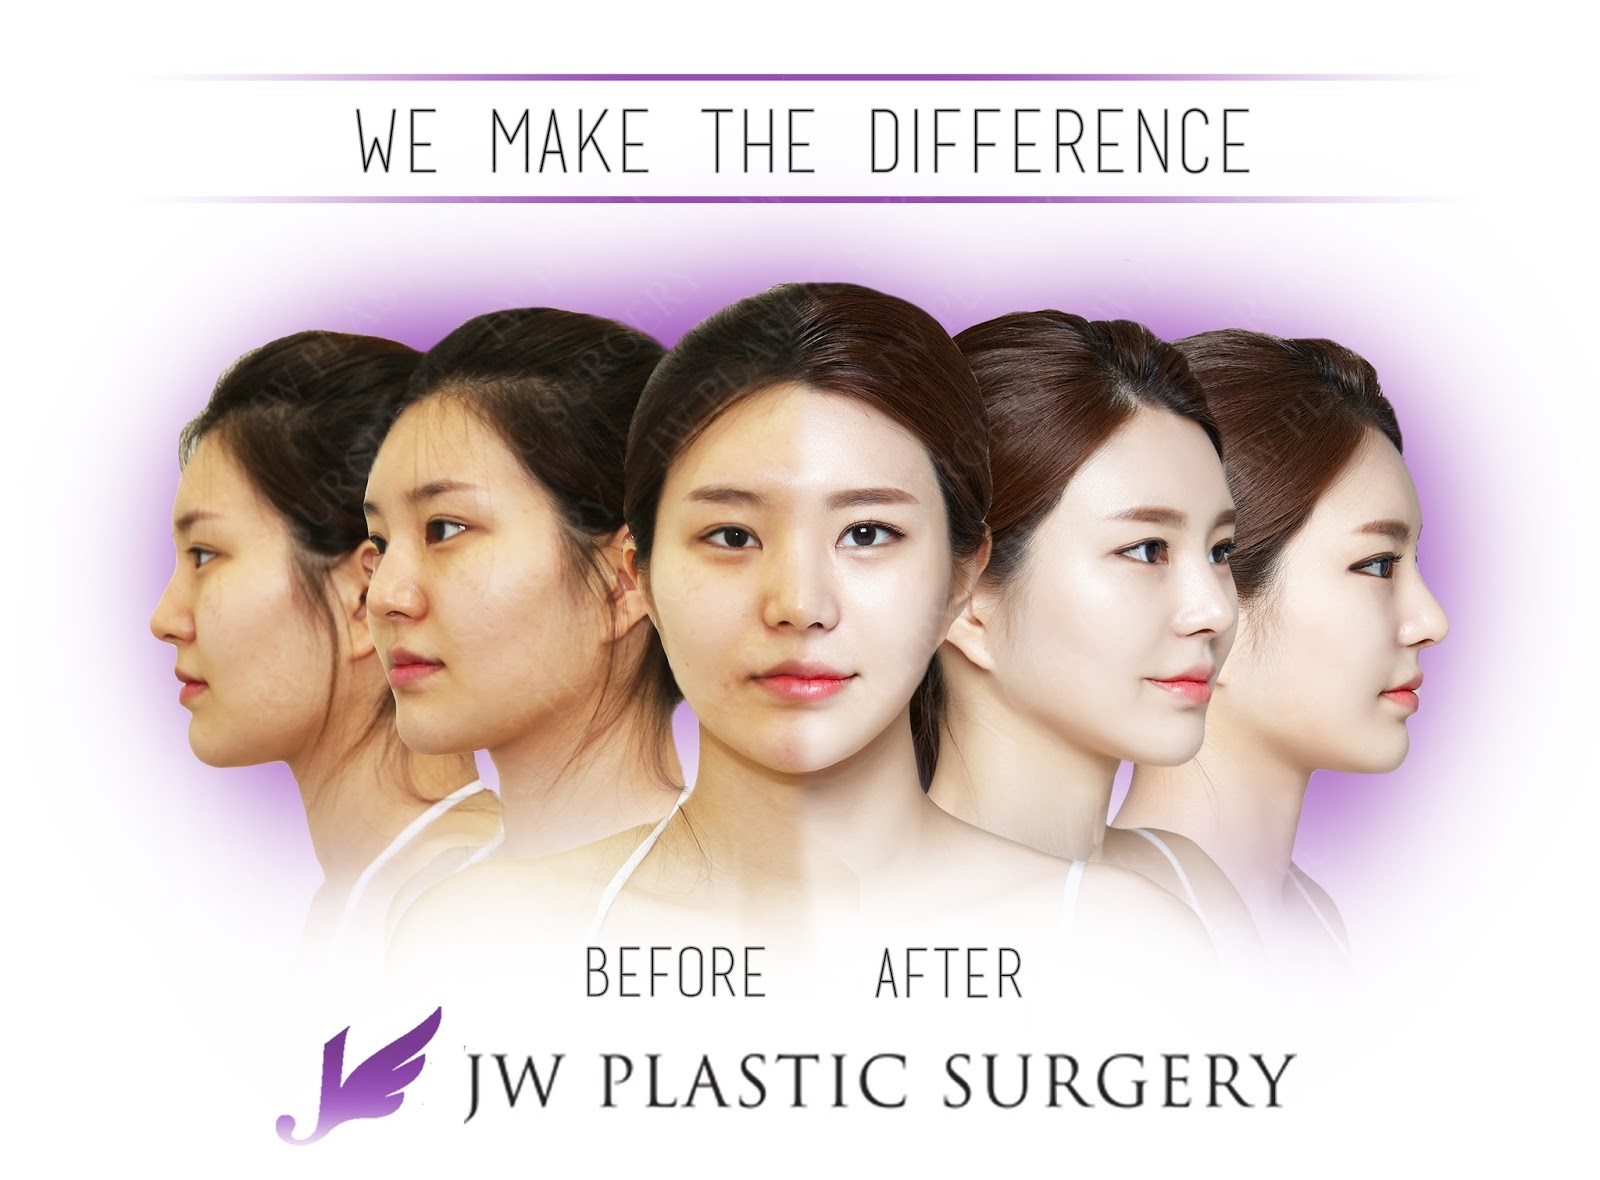 jw plastic surgery center korea  patient who had rhinoplasty by dr man koon suh and faical bone